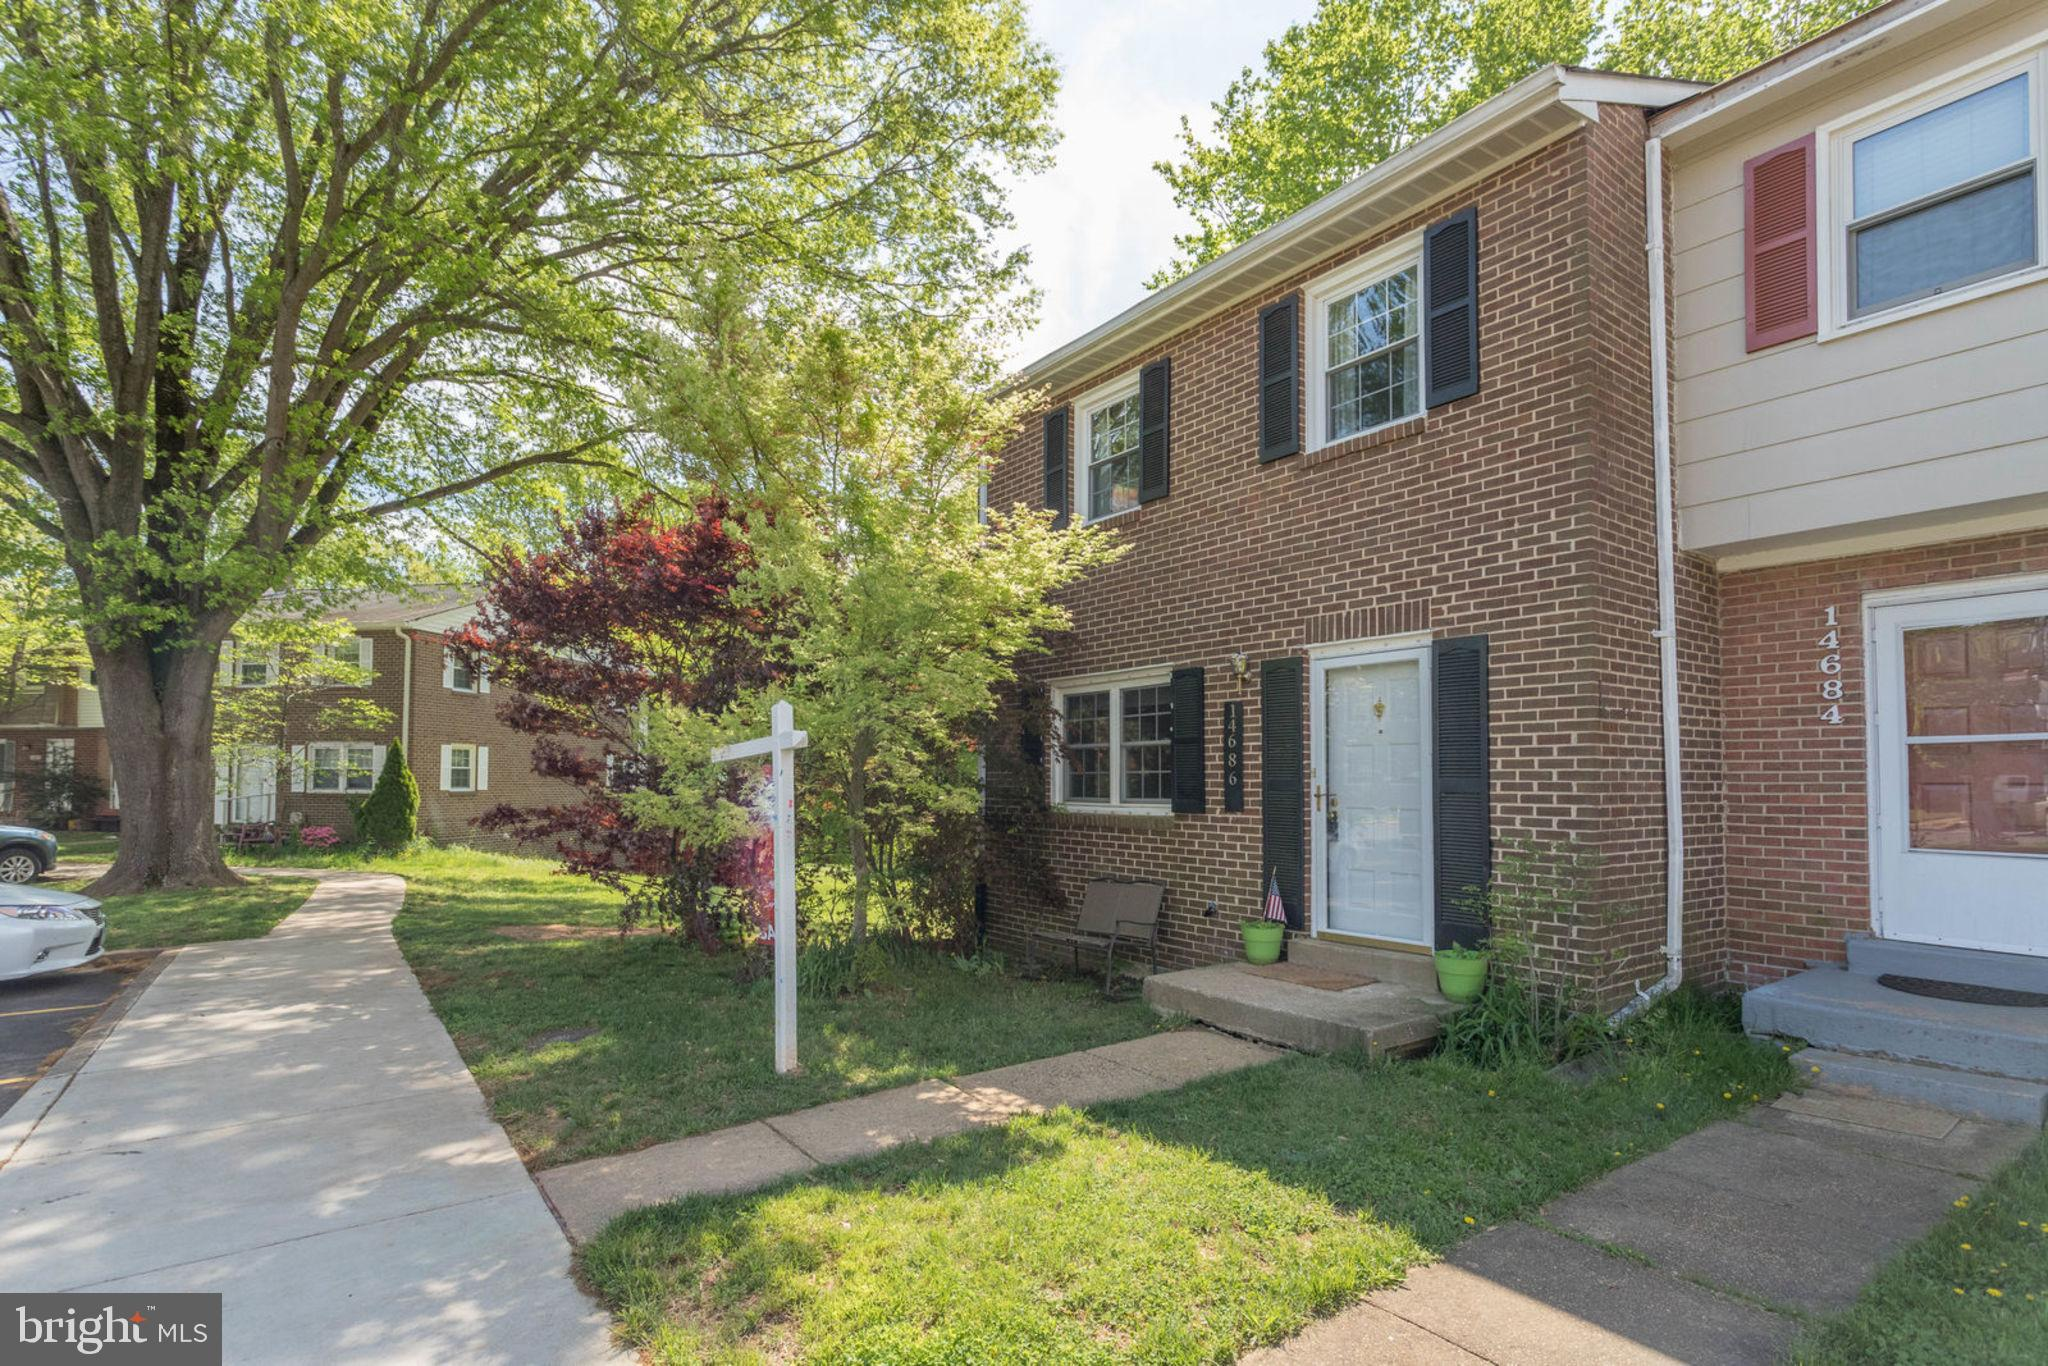 Welcome to this desirable, 3 Level, END ~ Townhouse with 3 bedrooms, 2 full and 2 half baths.  Brick front and Brick side. Kitchen has 42~ Maple cabinets, granite counter tops and Stainless Steel appliances.  There is recessed lighting in the living and the family rooms.  The family/recreation room on the lower level has ceramic floors and a brick fireplace with a wood stove insert.  Walk out from the family room on to a patio and a fully fenced backyard backing to common ground woods.  Roof is approx. 2 years old.  Seller prefers RGS Title, Springfield.